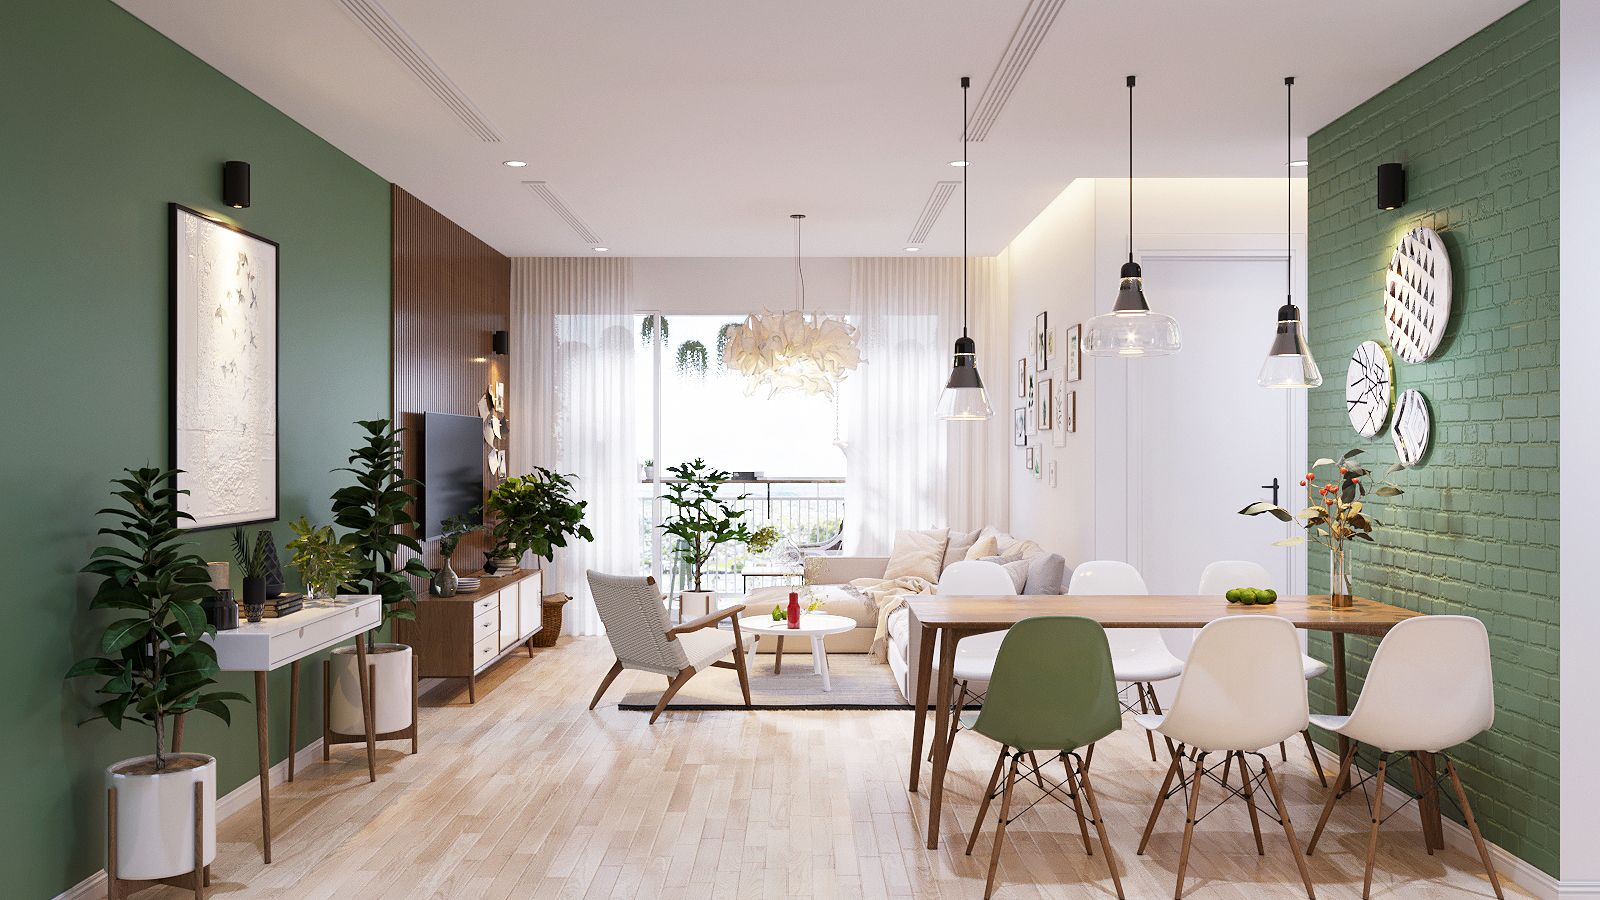 Modern Scandinavian Style Home Design For Young Families: 2 Examples ...